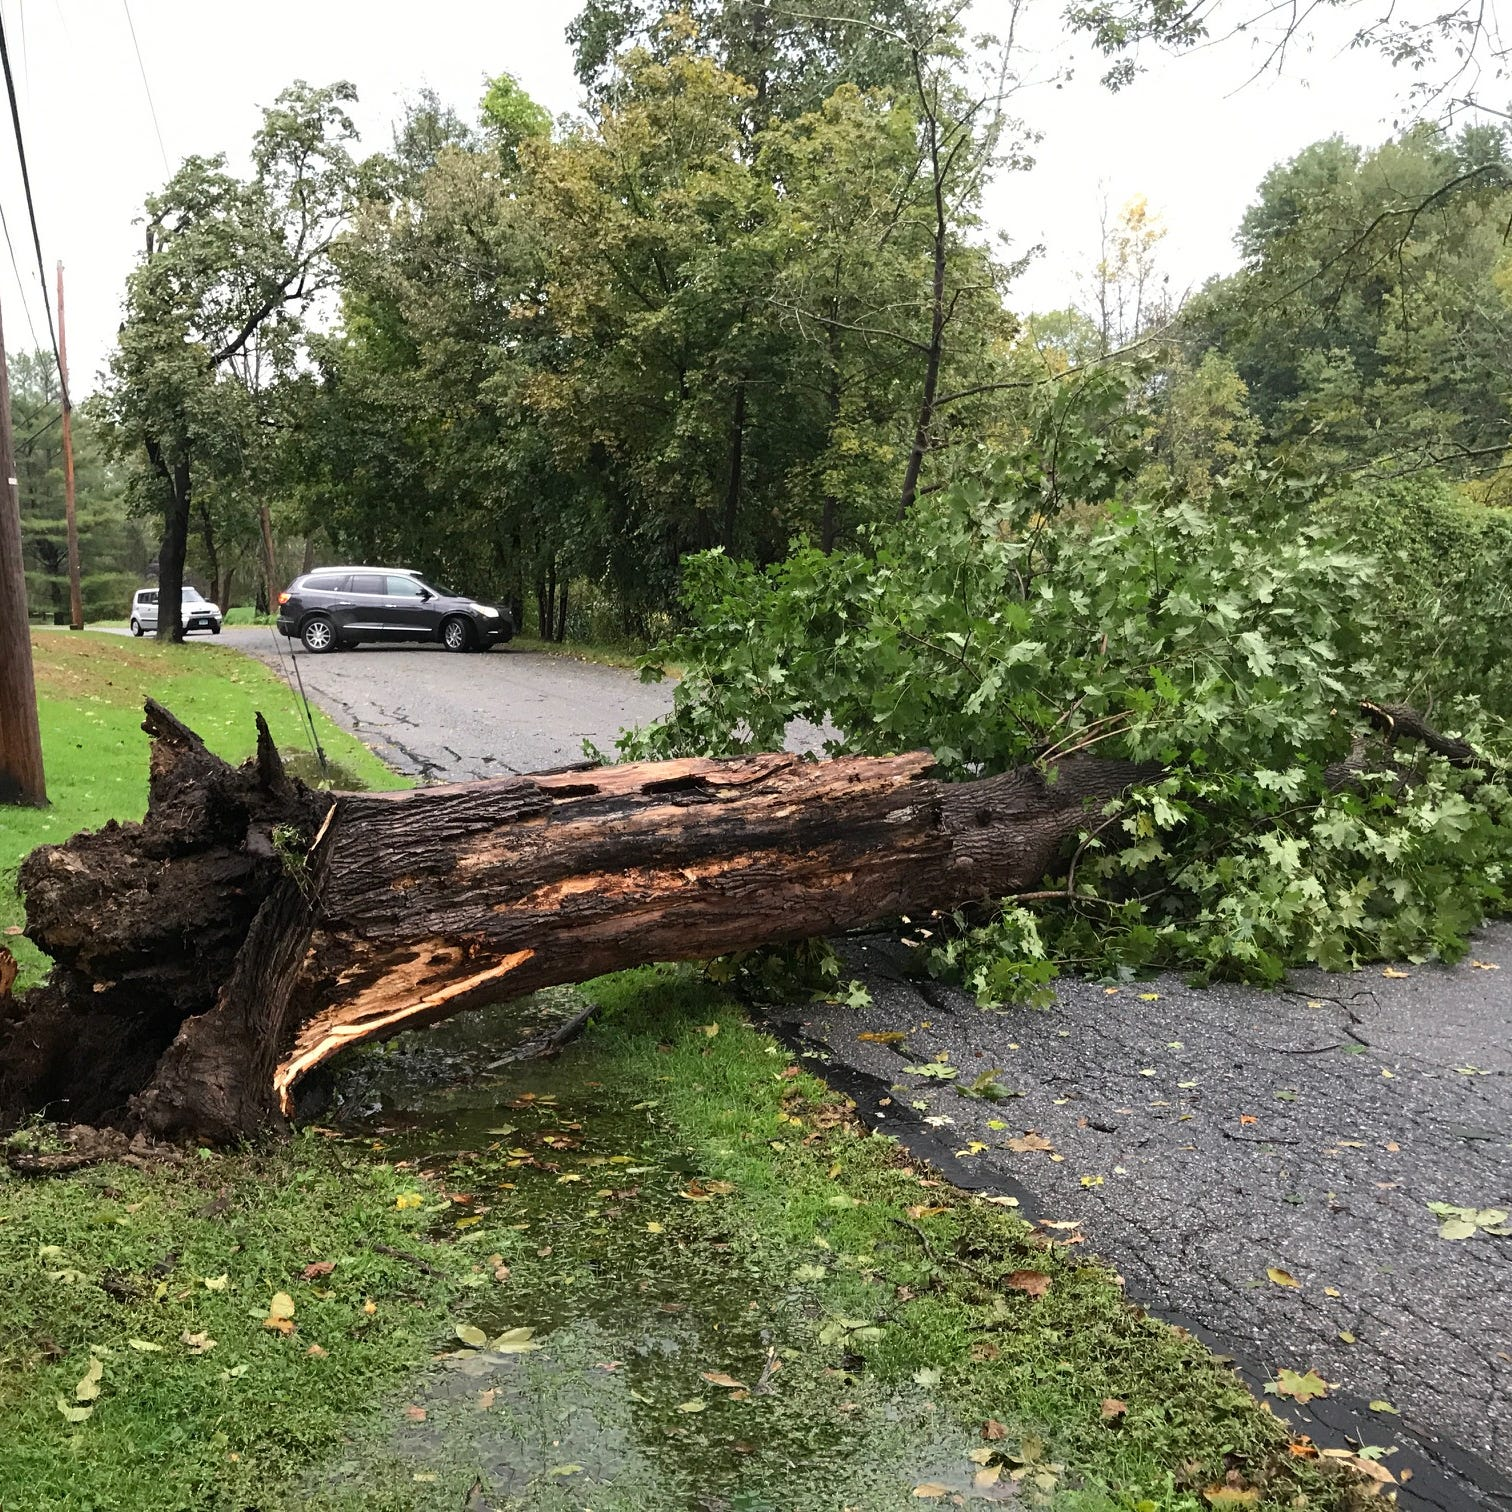 About 160 without power after Tuesday storms